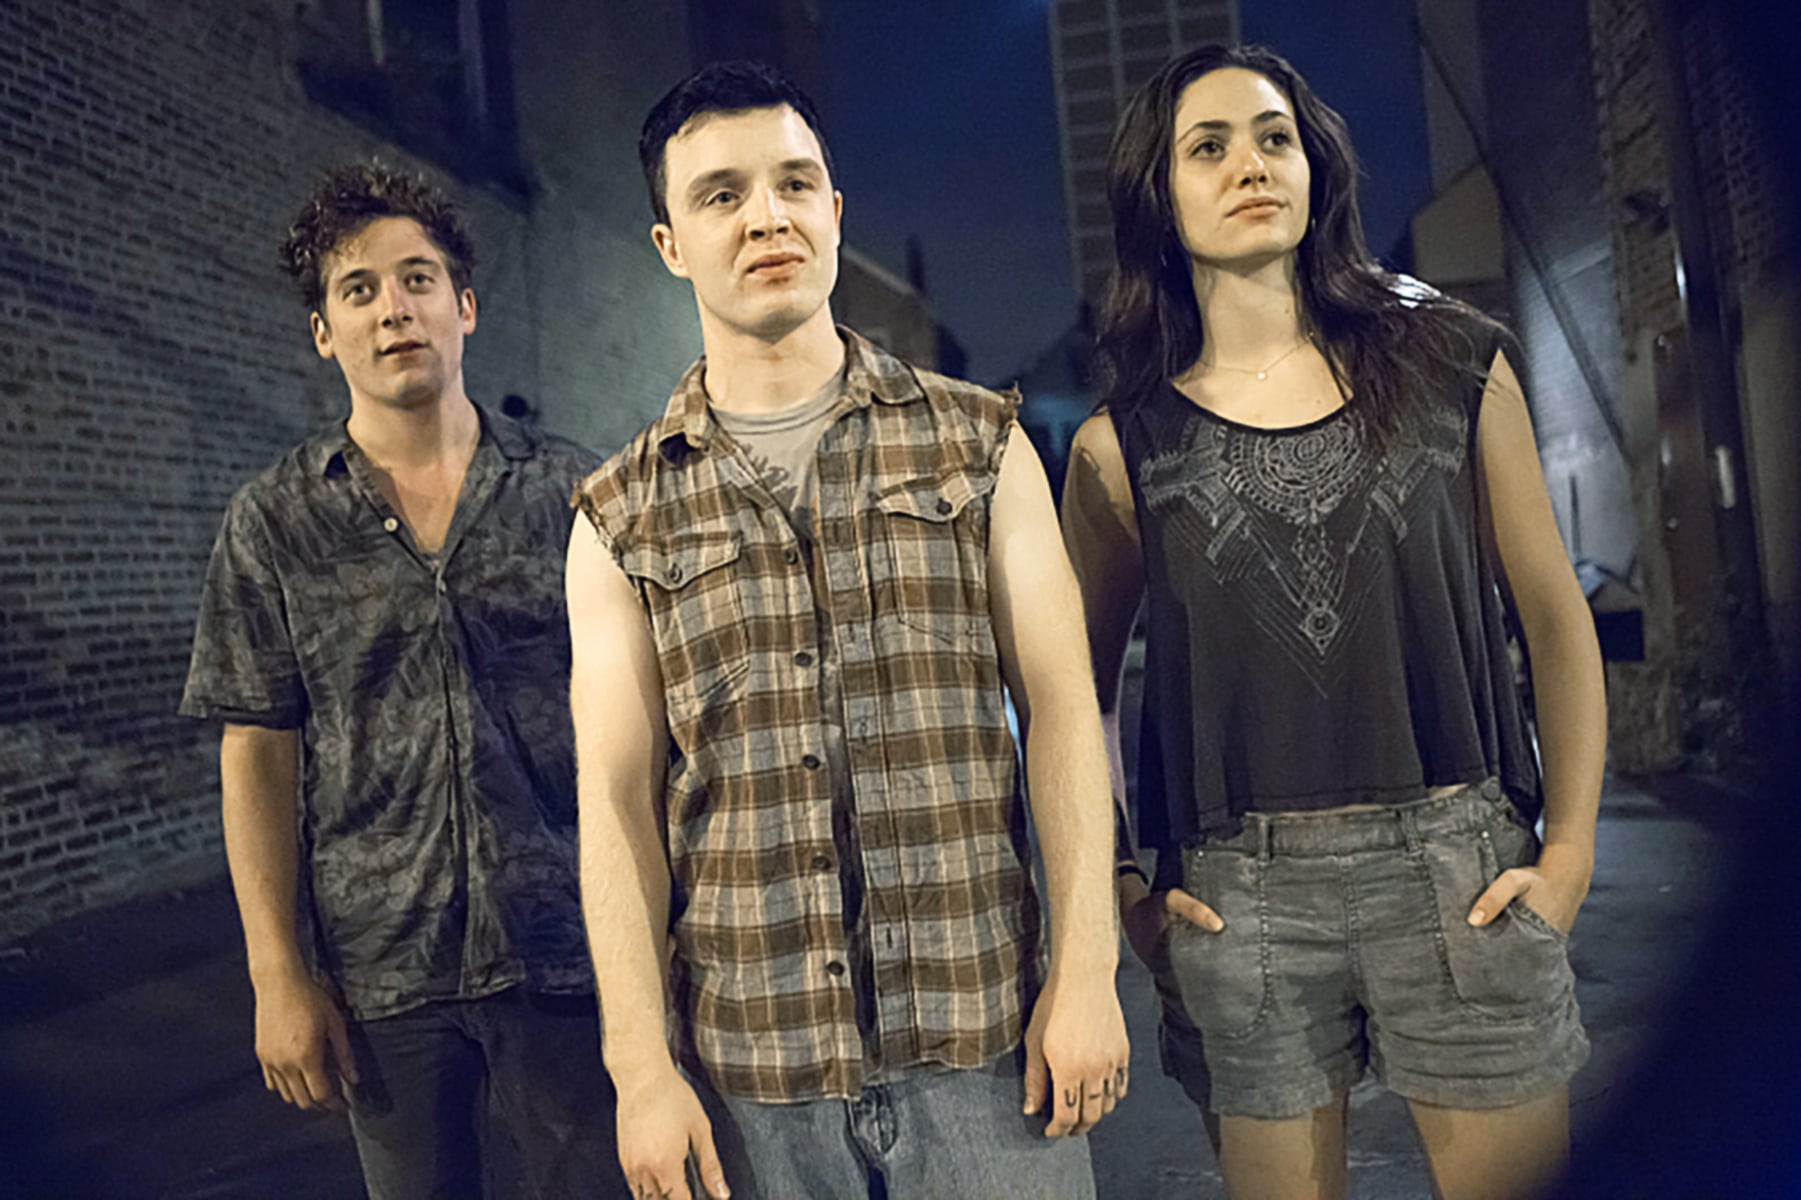 SHAMELESS, l-r: Jeremy Allen White, Noel Fisher, Emmy Rossum in 'Milk of the Gods' (Season 5, Episode 1, aired January 11, 2015). ph: Chuck Hodes/Showtime/courtesy Everett Collection